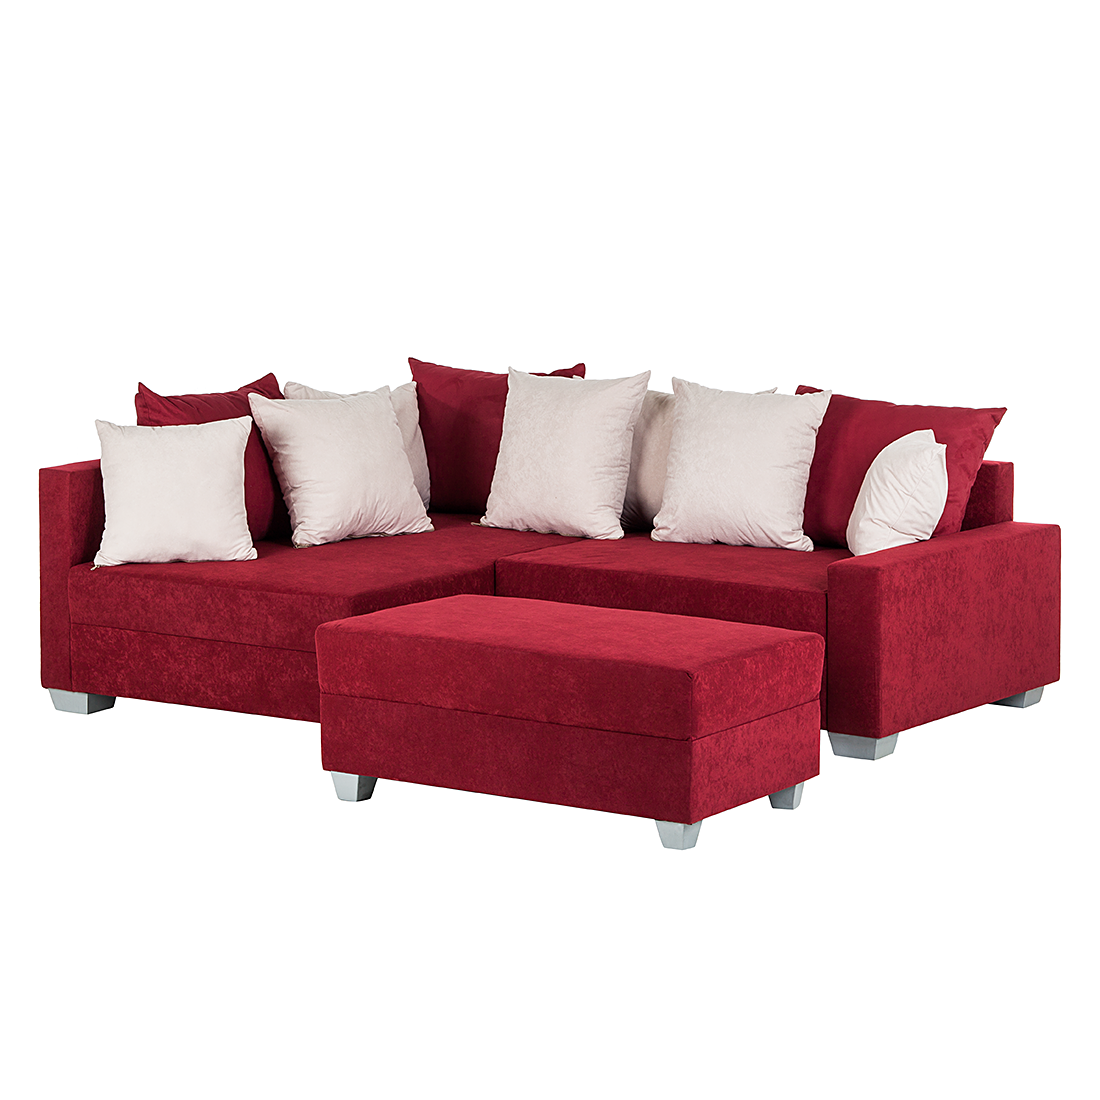 ecksofa hocker wohnlandschaft polsterecke microfaser rot beige sofa couch neu ebay. Black Bedroom Furniture Sets. Home Design Ideas